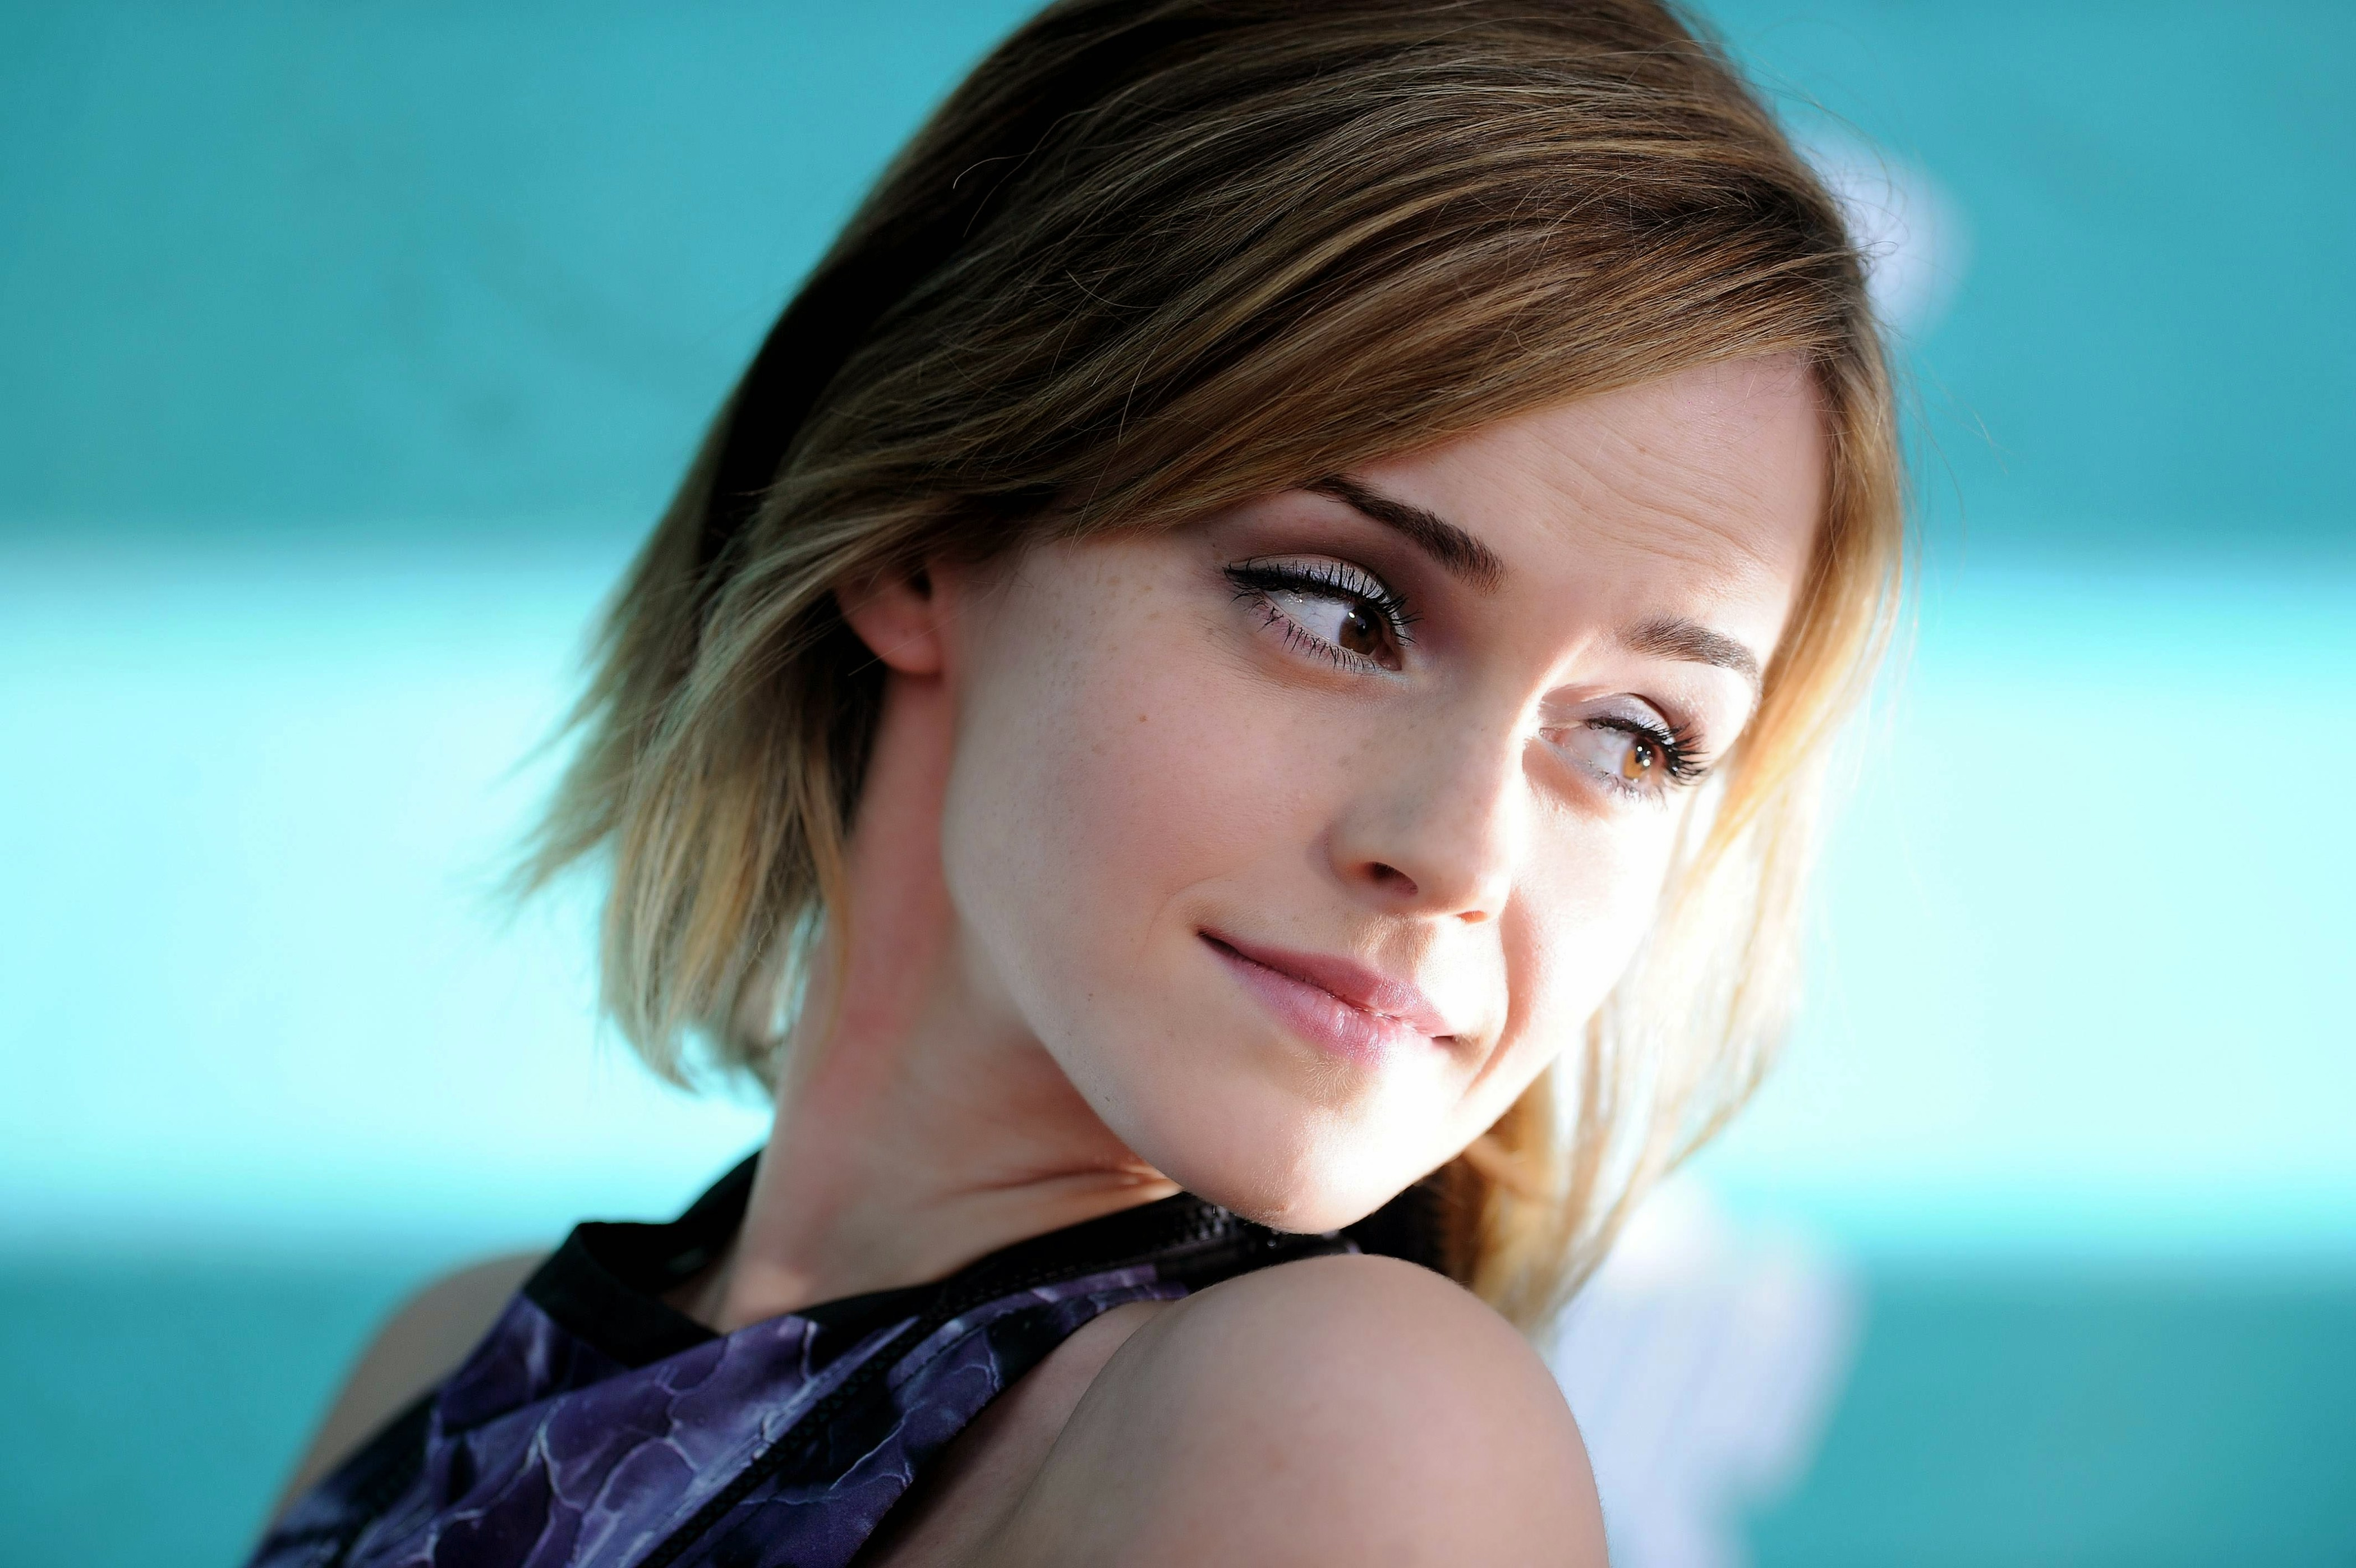 Emma Watson wallpapers High Quality Resolution